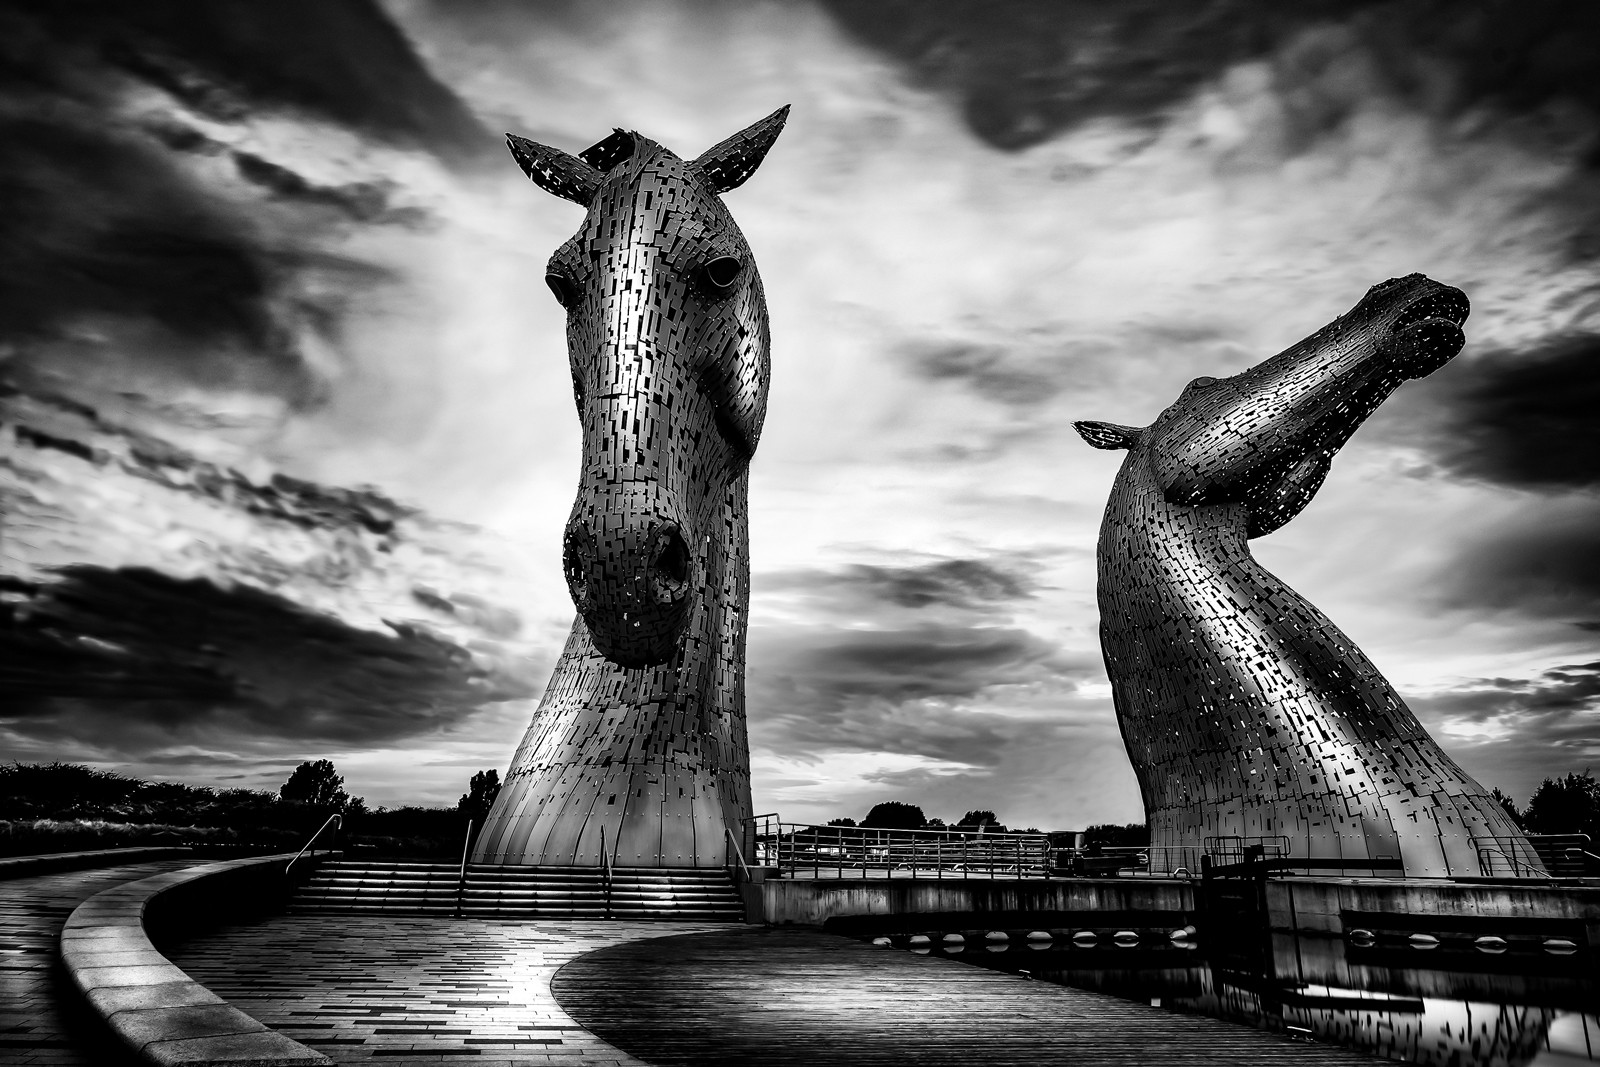 MONO - Horse Heads by Tom Dalzell (10 marks)